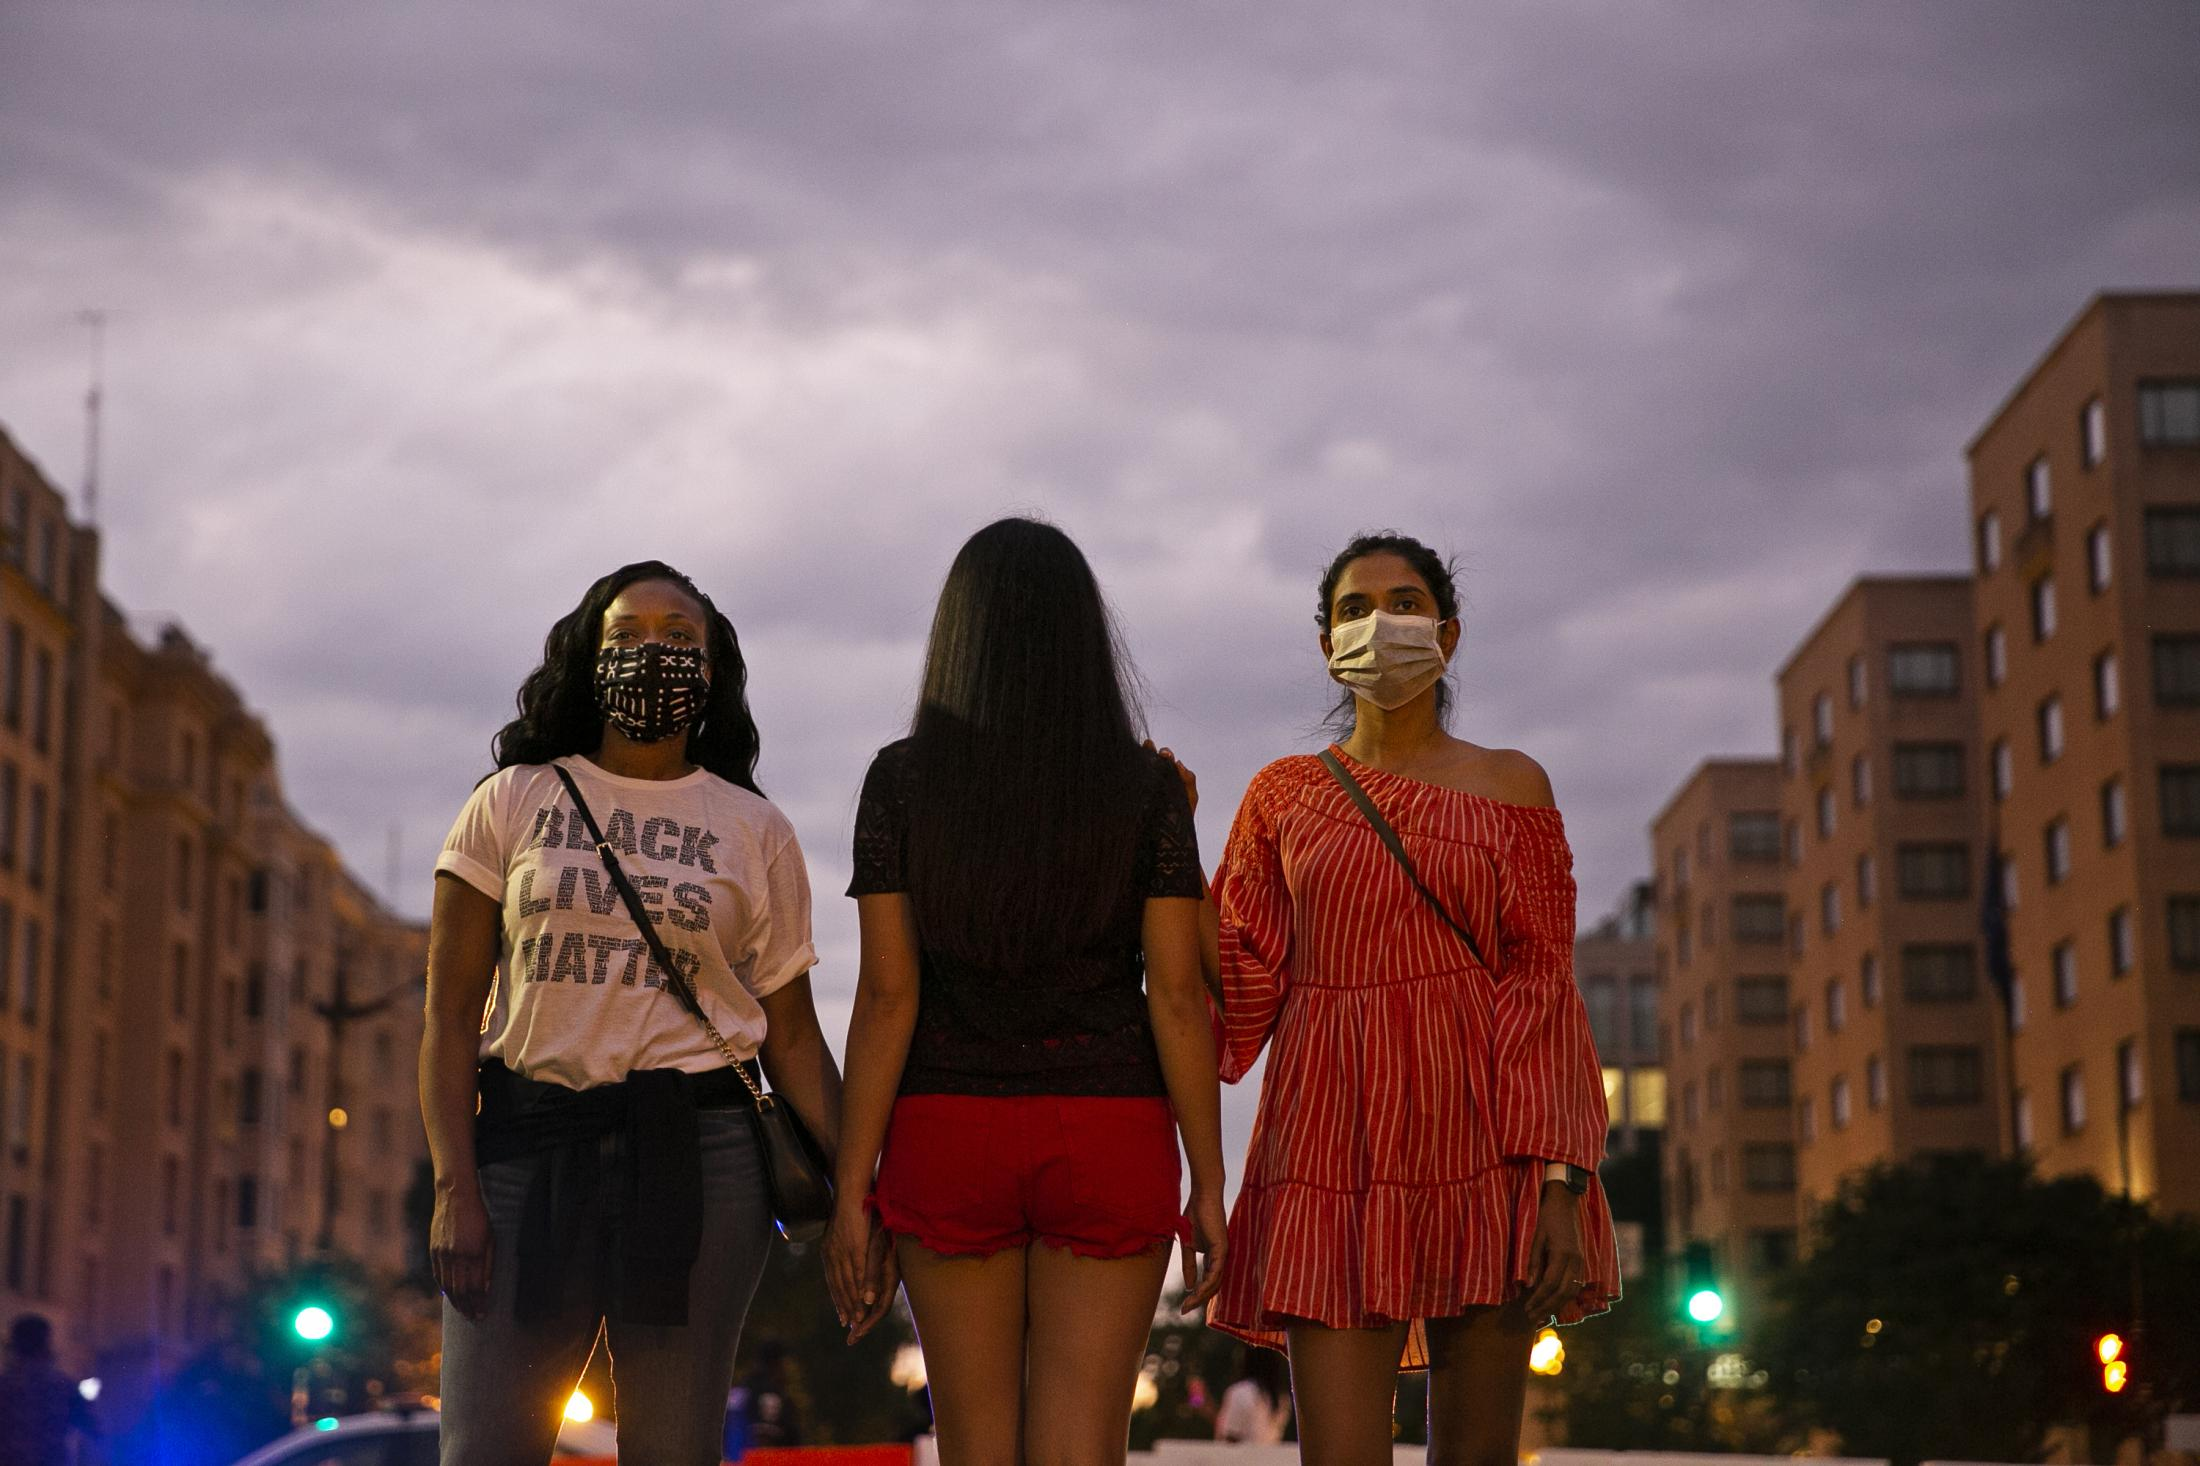 """Tamara (left), 39, comes to the protests with her friend Preethy (right) and their Vietnamese American friend who is not willing to identify herself. """"As an immigrant, we all face some levels of discrimination, but I don't think it would ever come up to the level of racism that Black people face,"""" Preethy says, """"It is important for us to stand up for that as part of the community and a lot of legal reform is needed right now."""" Tamara expresses her concern that the killing of George Floyd could have happened to her brother and uncle. """"It meant a lot to me my friends are supportive and invite me out,"""" Tamara says, """"As an African-American woman, it is really nice to have the support of people who are not Black, it warms my heart to have them support me."""""""